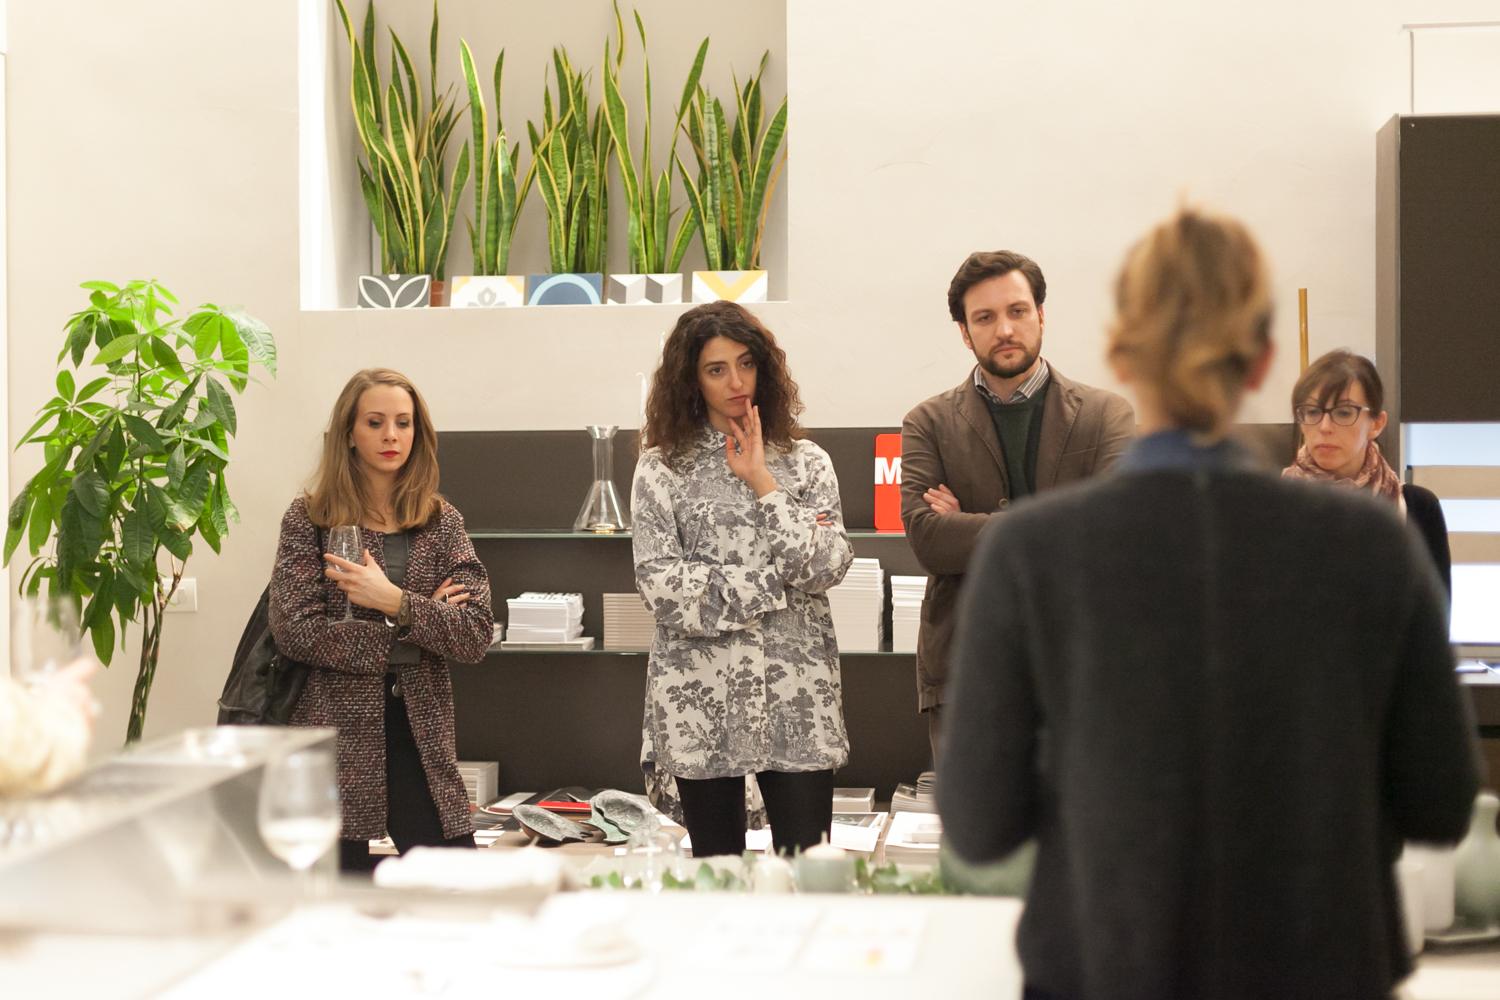 SET THE TABLE STYLING EVENTO SPAZIO MATERIAE NAPOLI FORME DI FARINA TAVOLA NATALE PHOTO (11 di 16).jpg